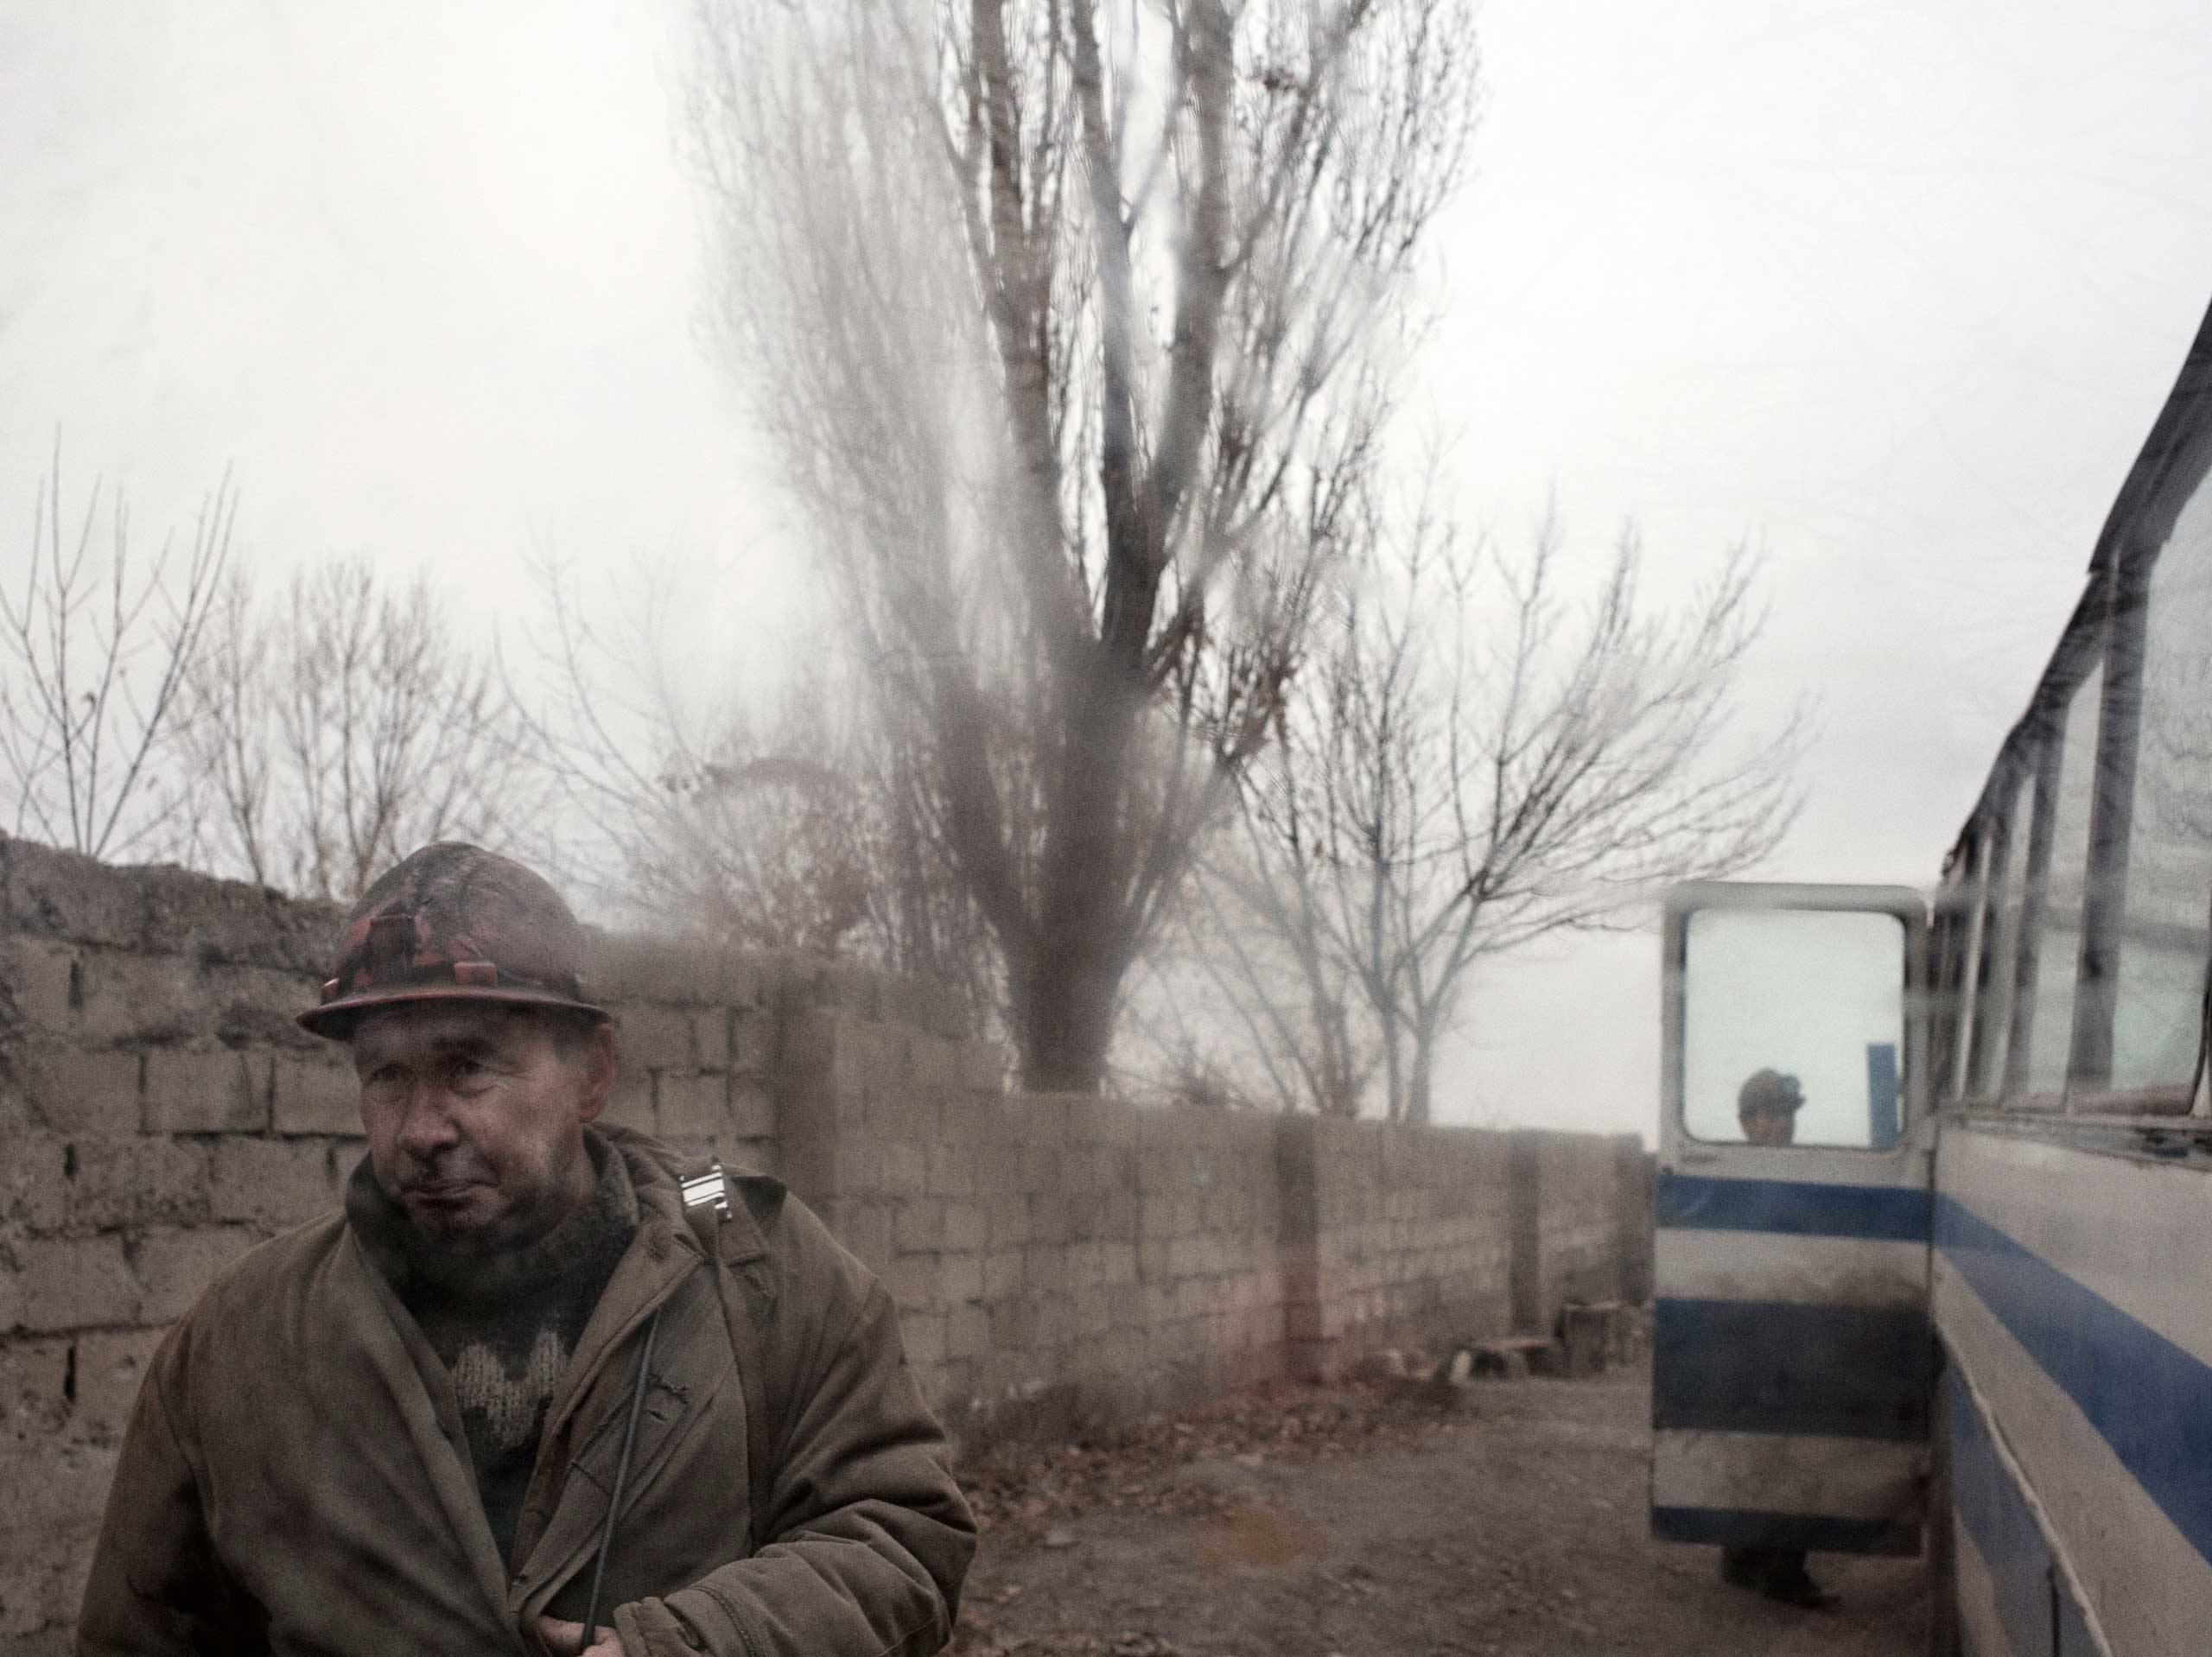 A miner outside the bus when it arrived to the deepest shaft of the Chelyuskintsev coal mine, minutes before being told the power had not been restored. Petrovskyi district, Donetsk, Ukraine. Nov. 24, 2014.